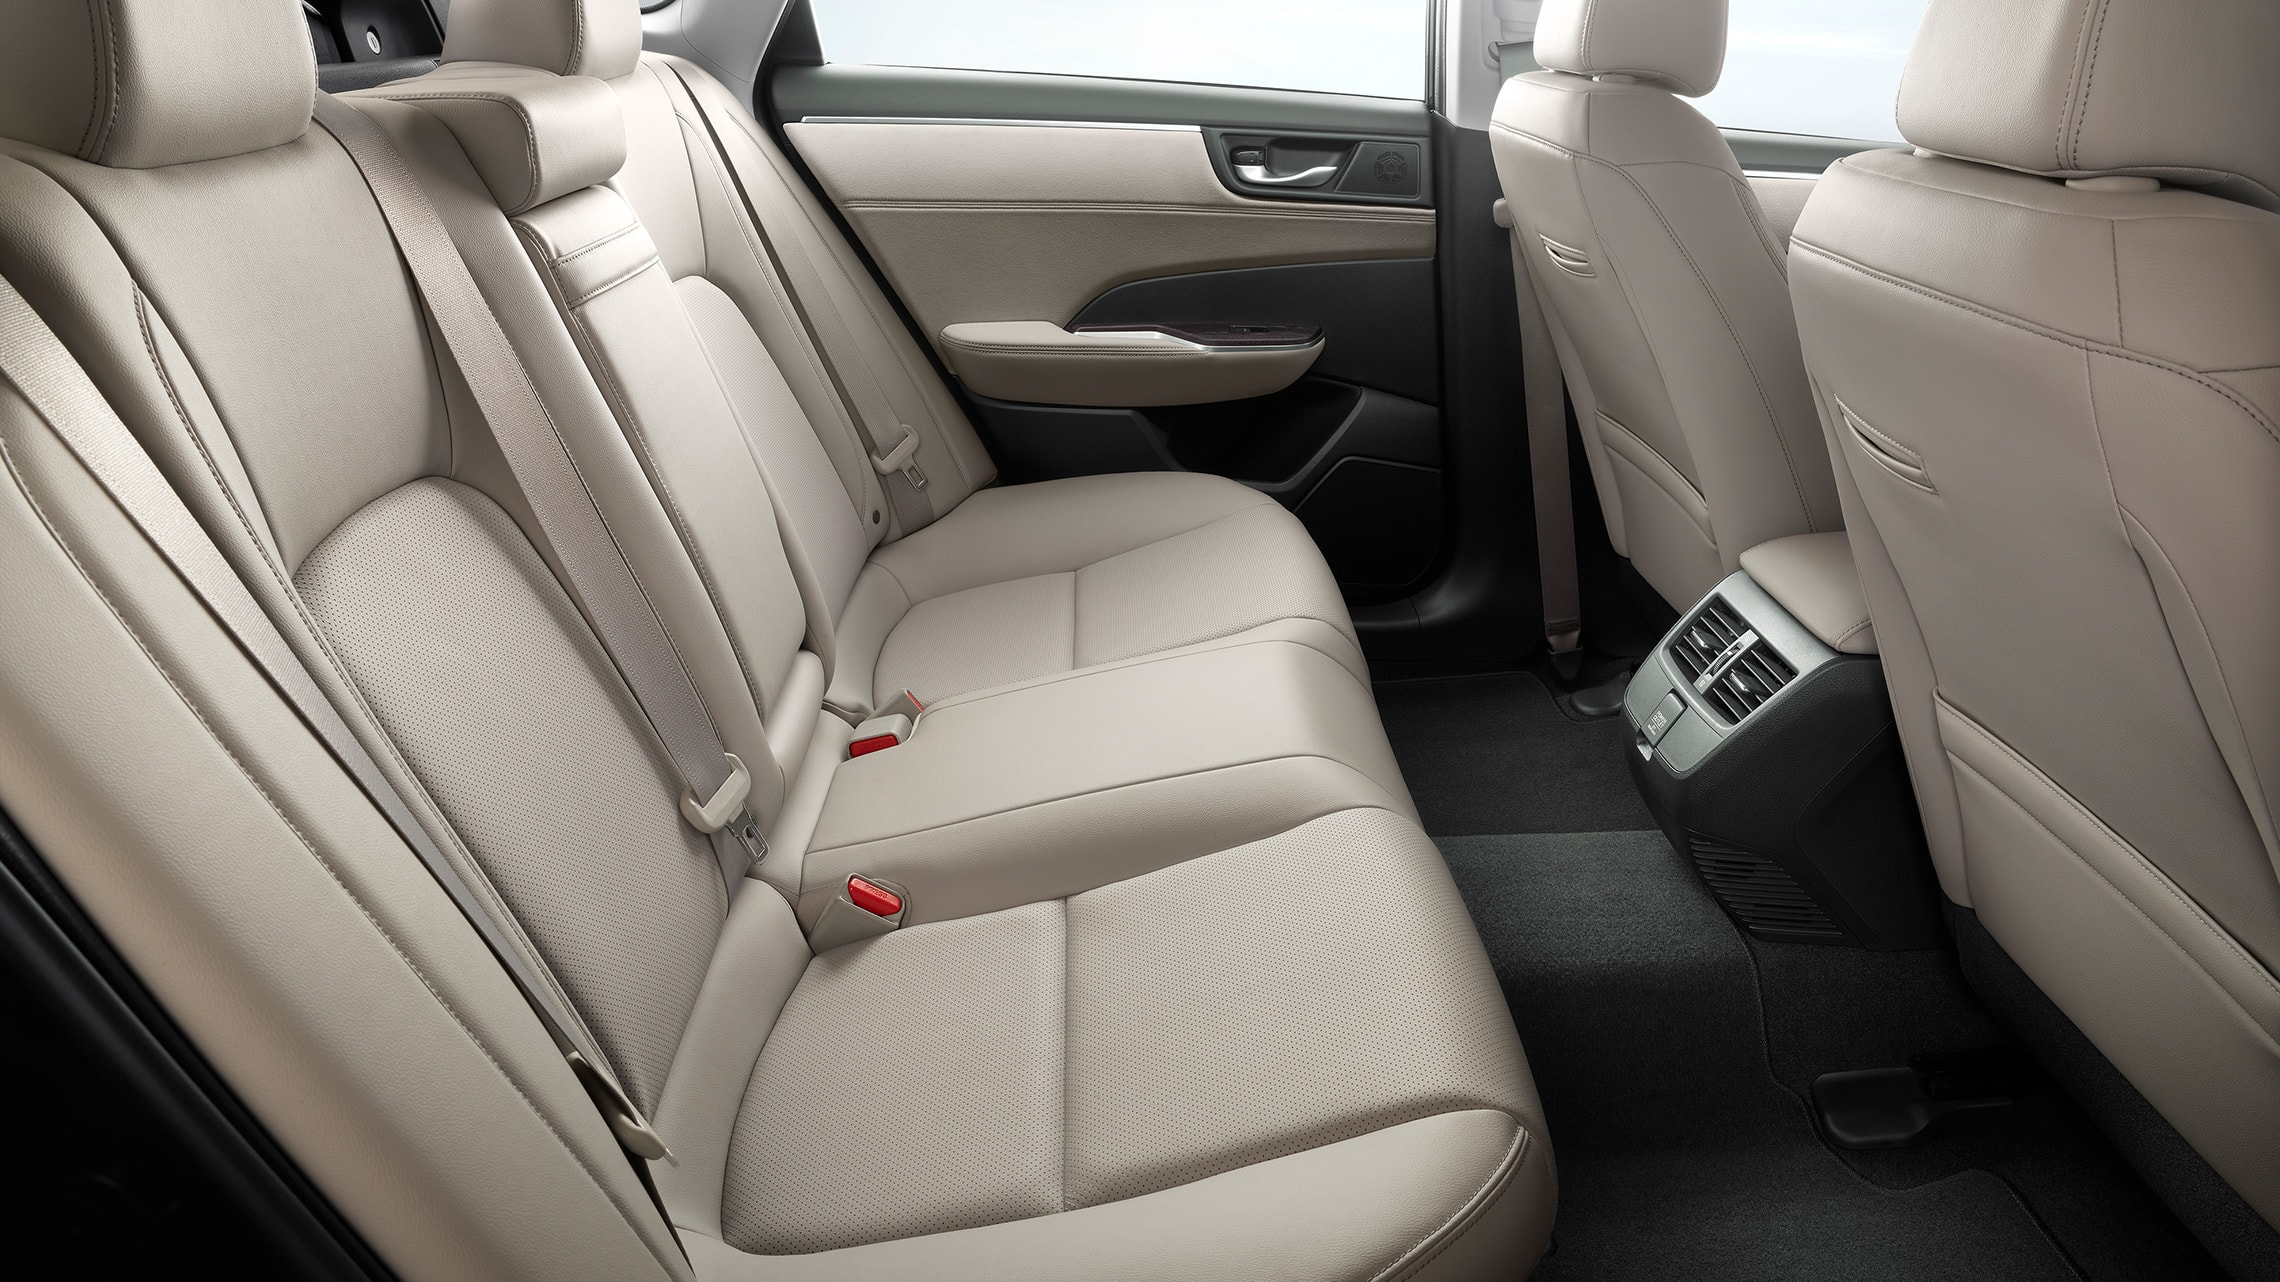 Rear seats of 2020 Clarity Plug-In Hybrid with Beige Leather-trimmed interior